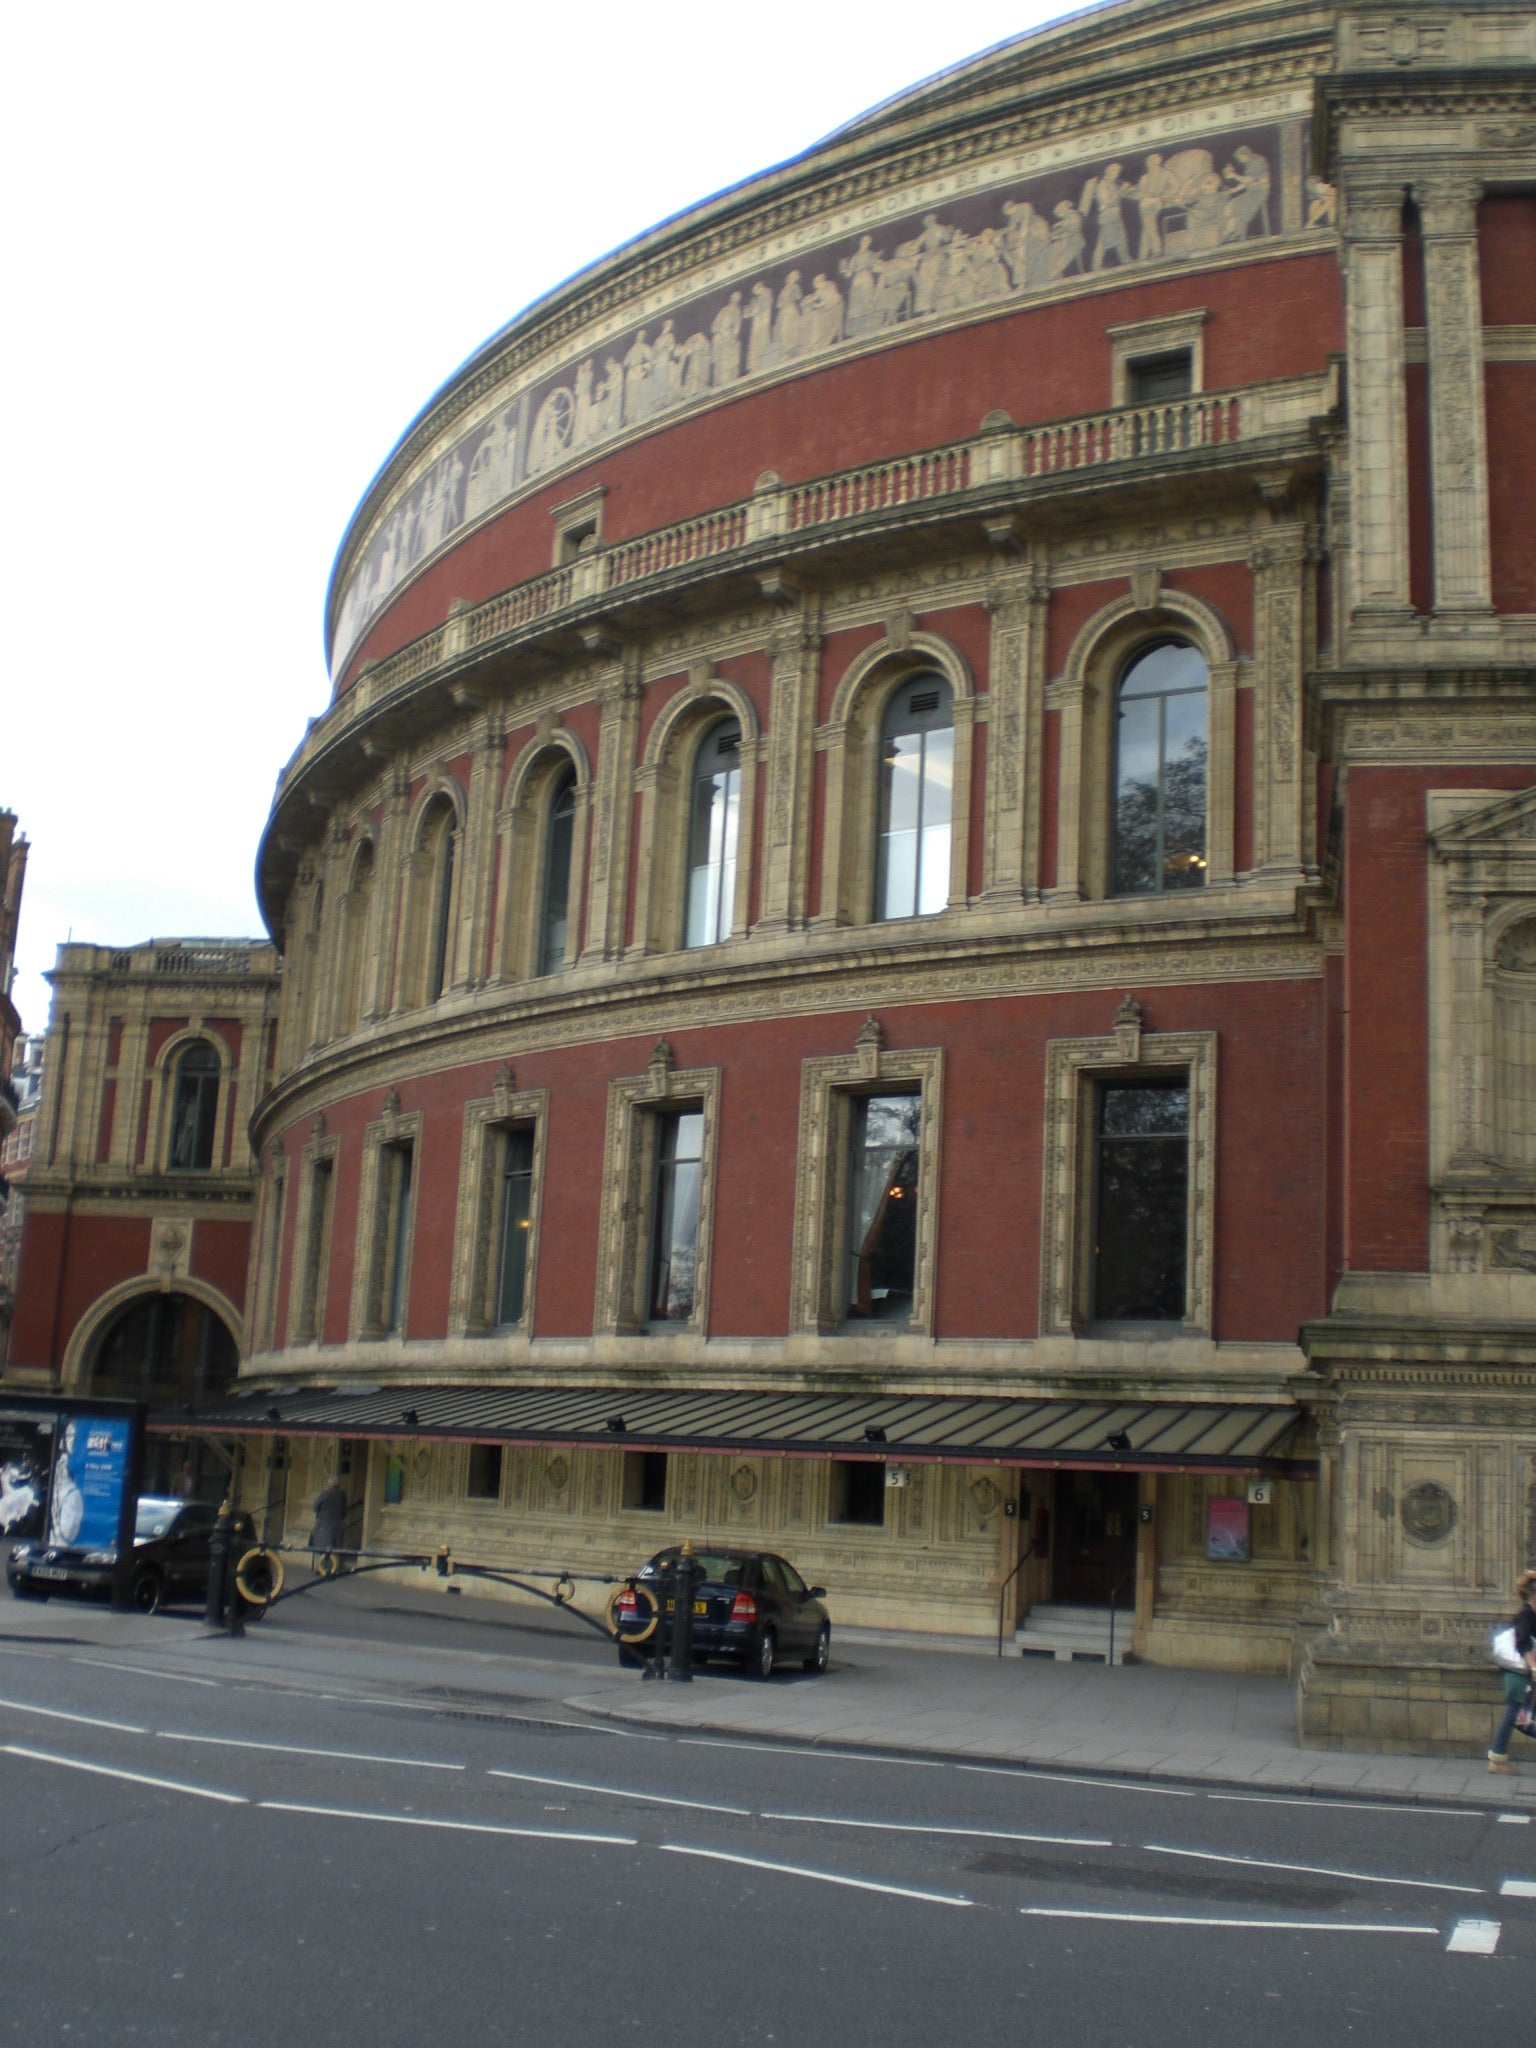 Pueblo en Royal Albert Hall